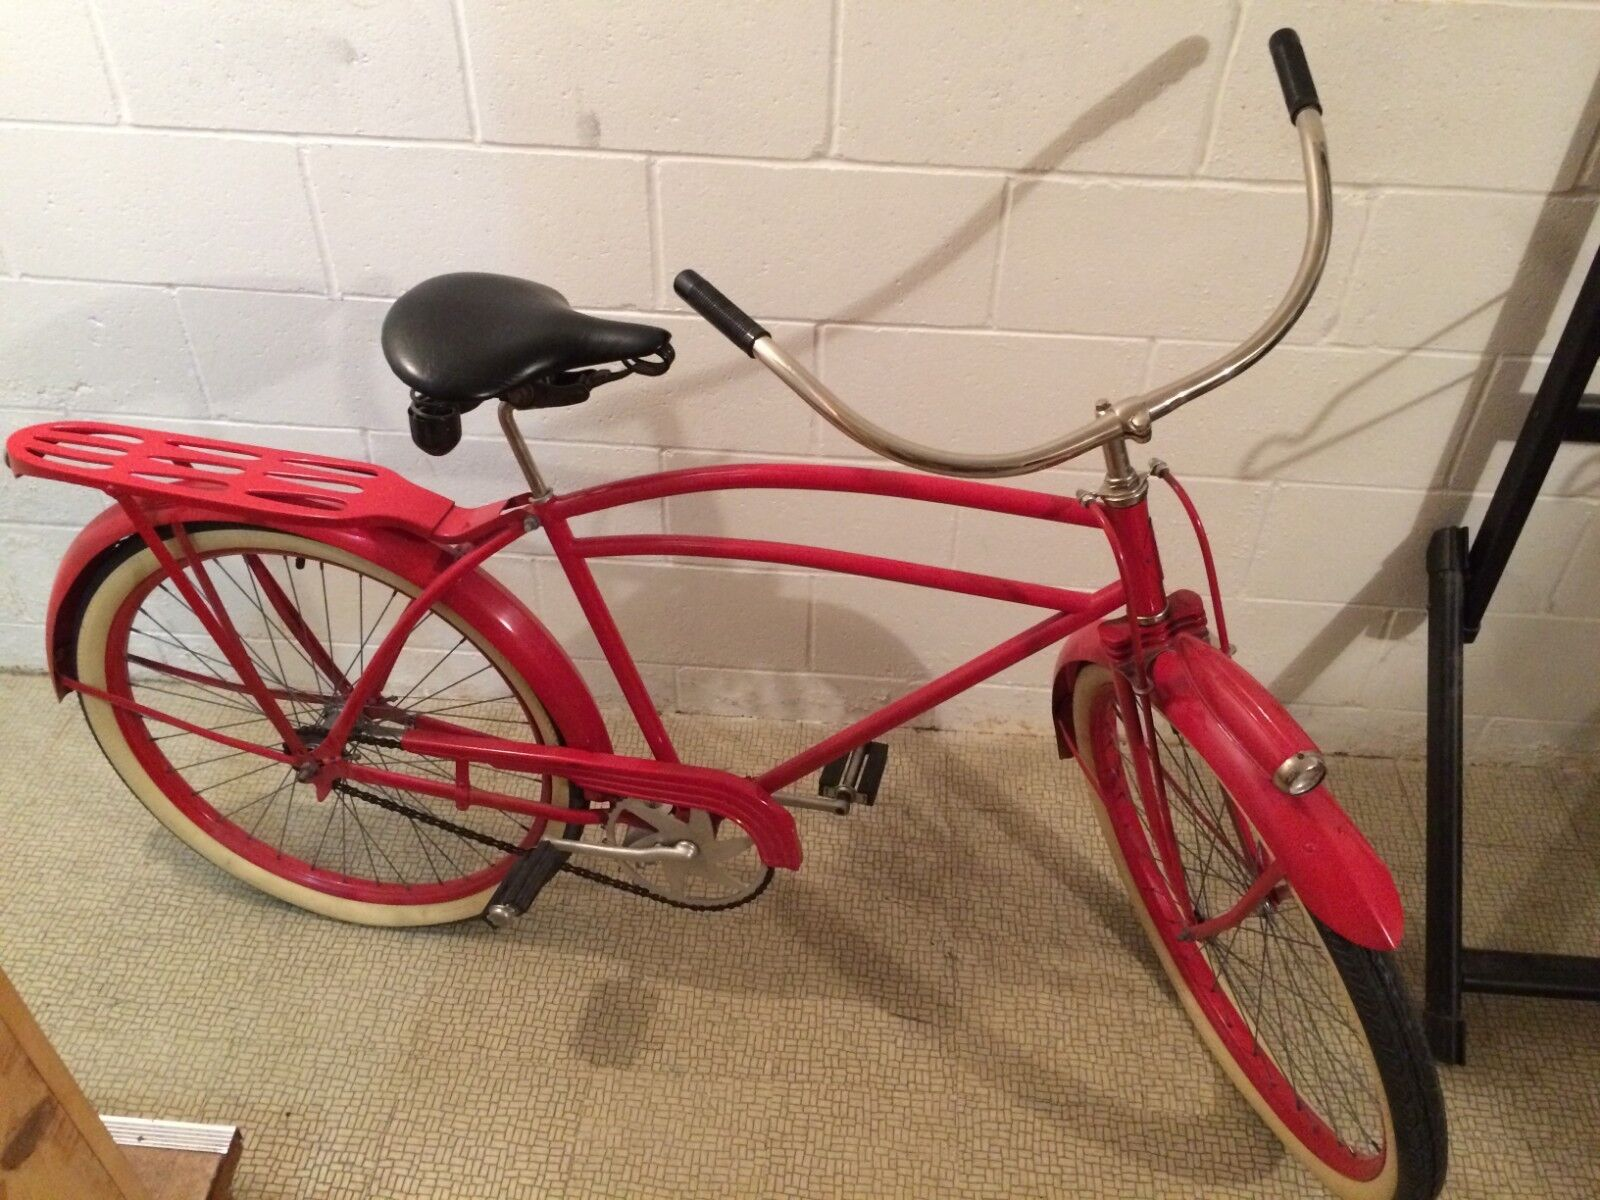 Wards hawthorne bicycle - pre-war (early 40's)